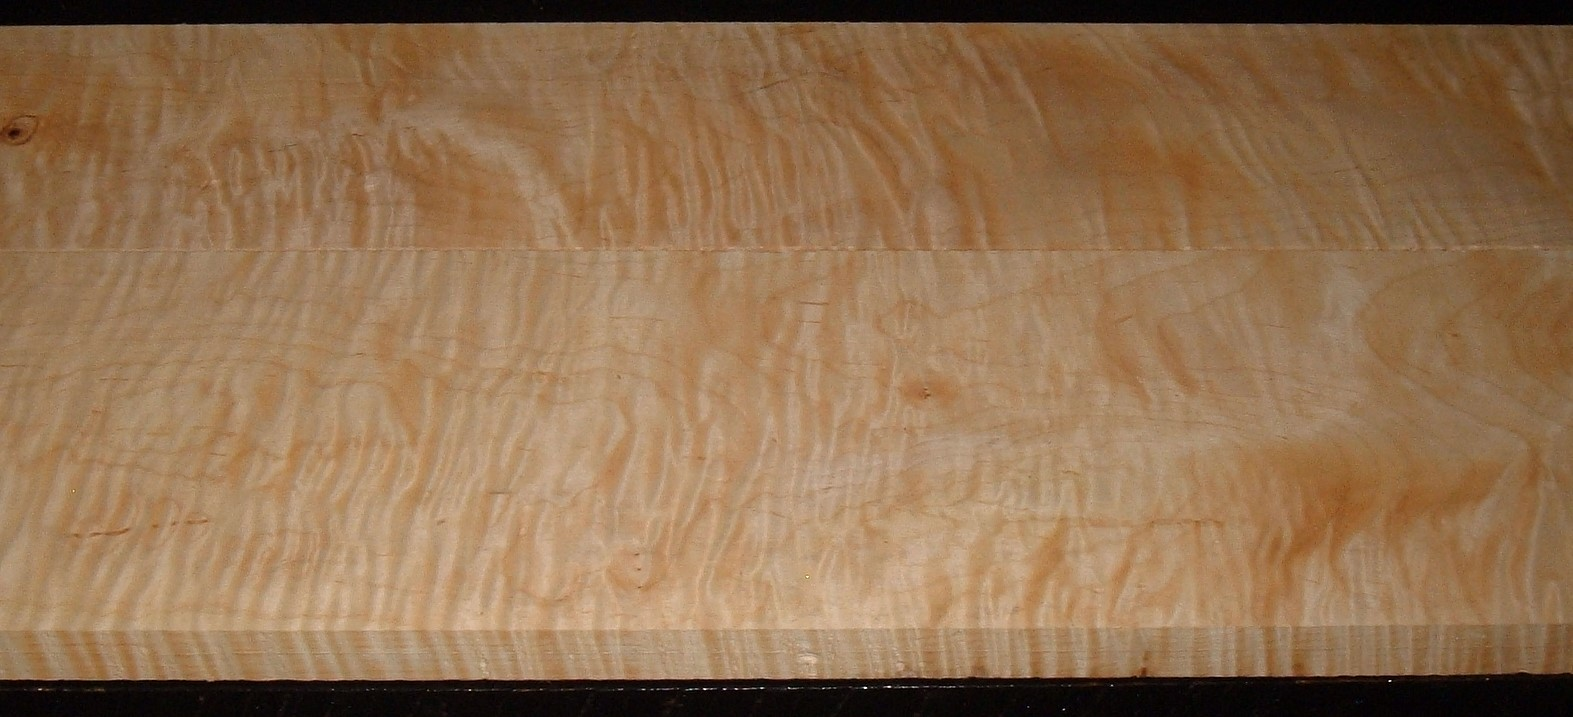 M2006-503JJ, 2bd, 7/8x5-3/8x48 ,7/8x6-5/8x48, 4/4 Curly Tiger Maple